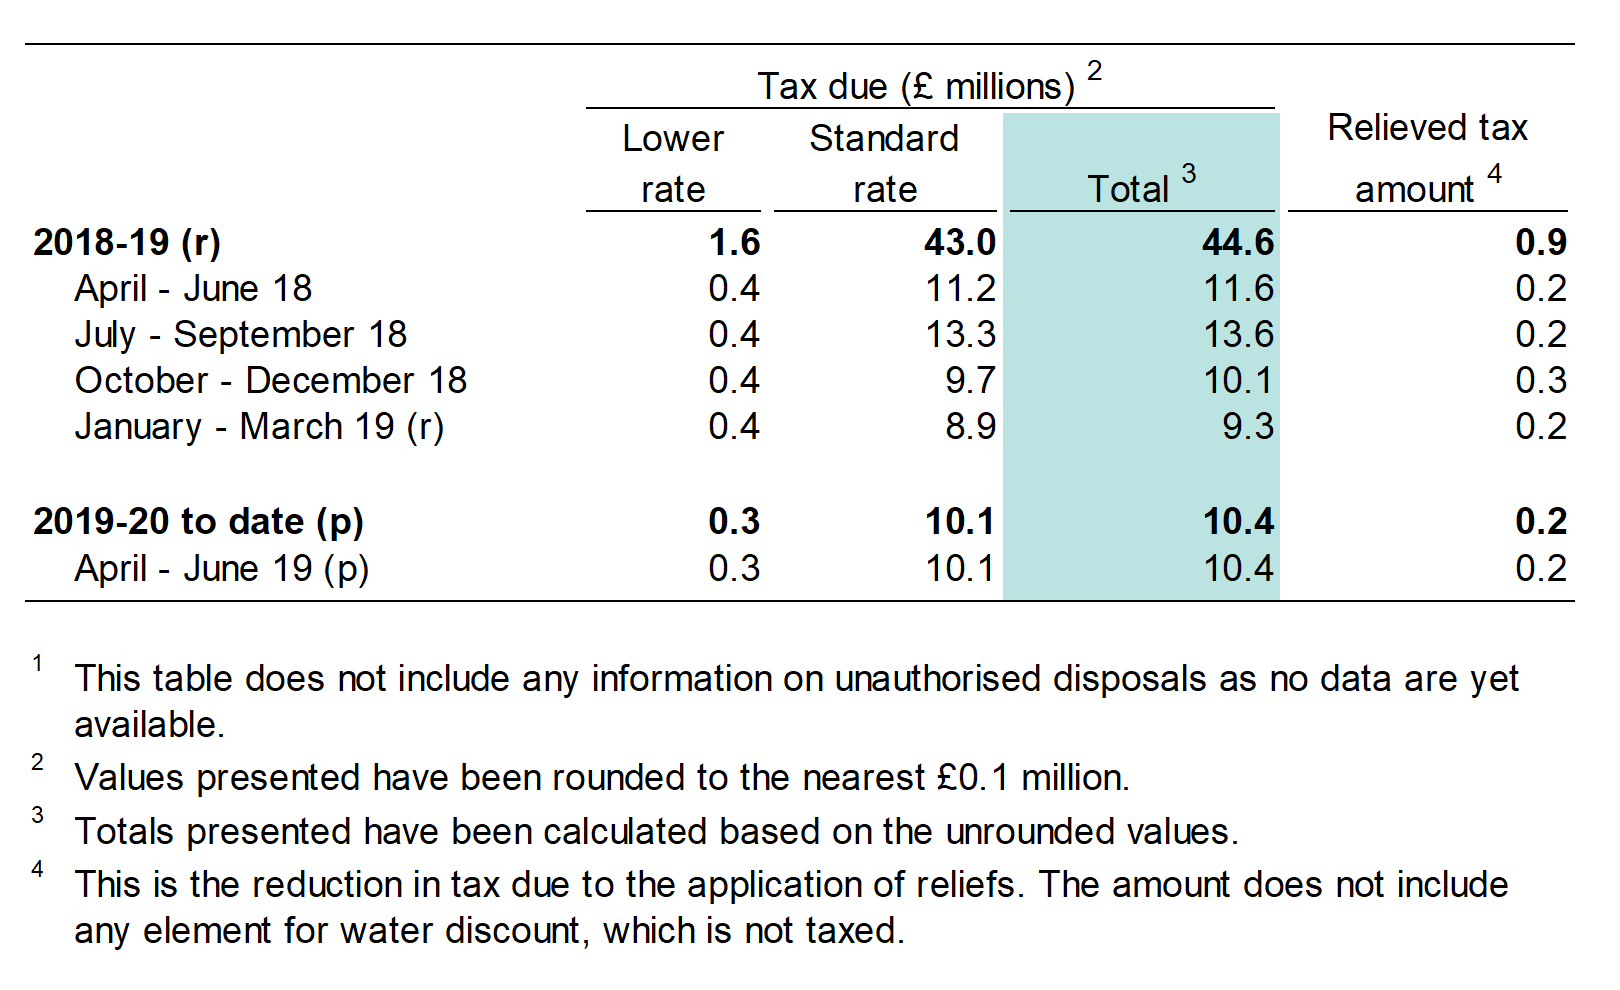 Table 1b shows the tax due on waste disposed to landfill, by tax rate and by quarter.